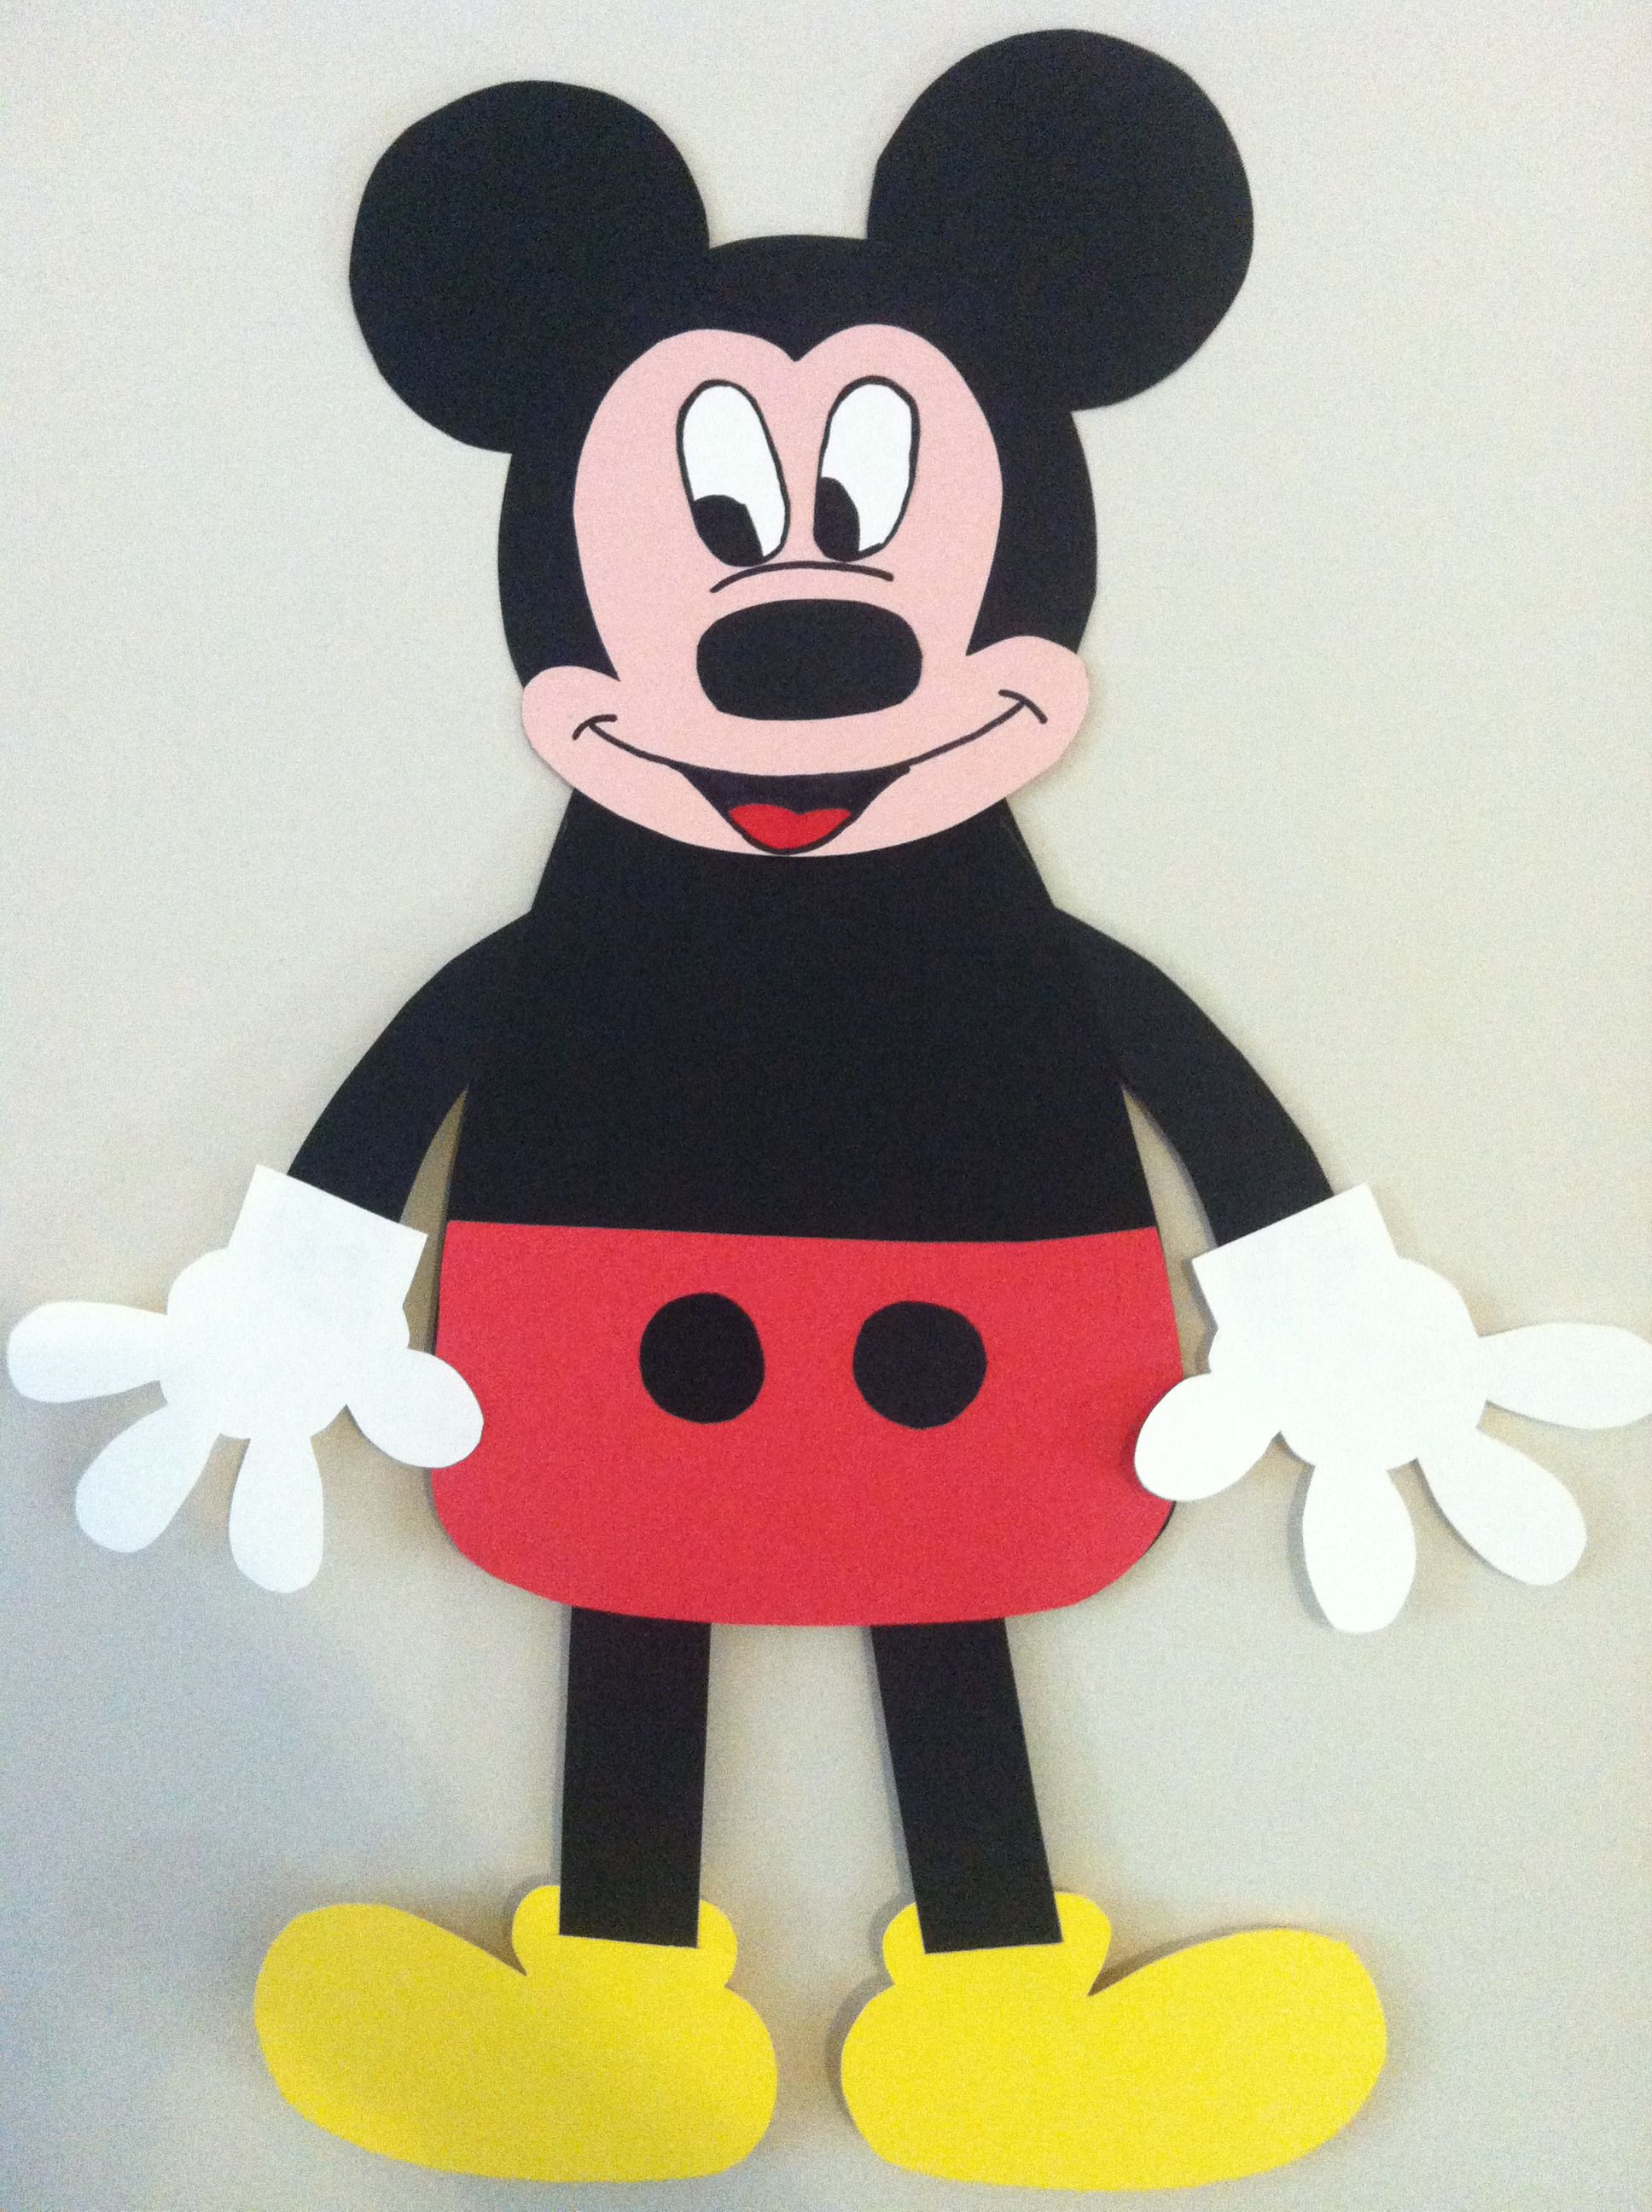 Mickey Mouse Project For The Kids At School This Week